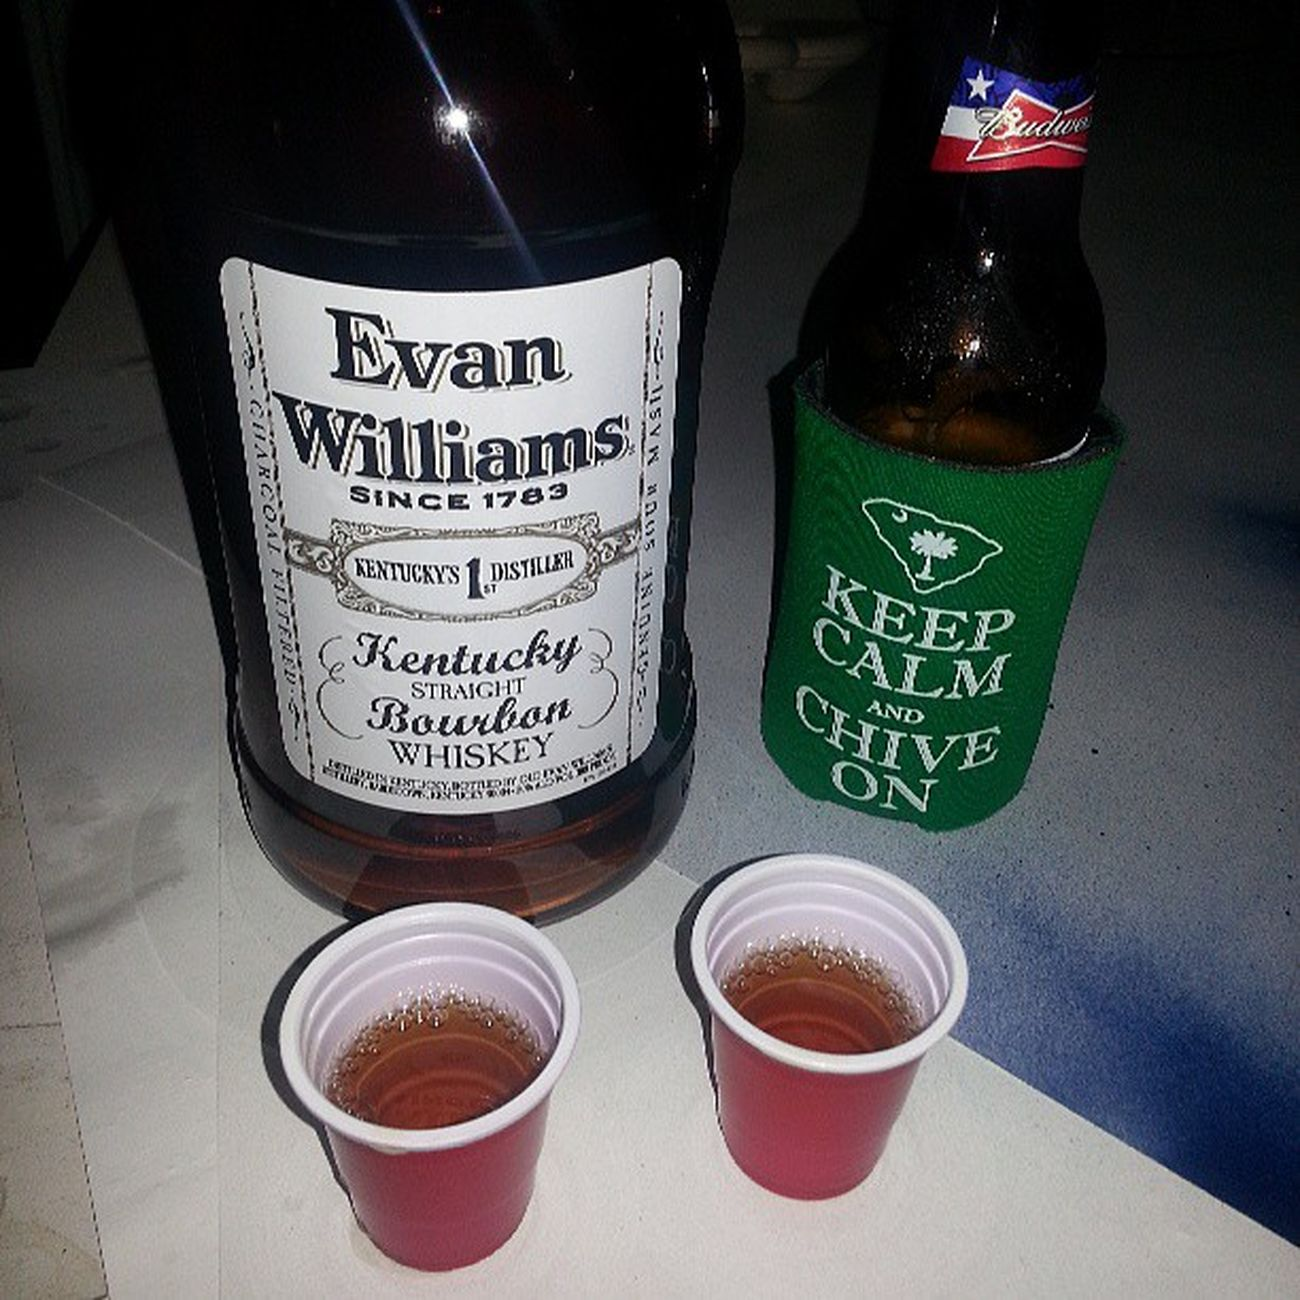 Chive On Charleston... Evan Williams White label Chiveoncharleston Chiveon Kcco CHIVEONCHS